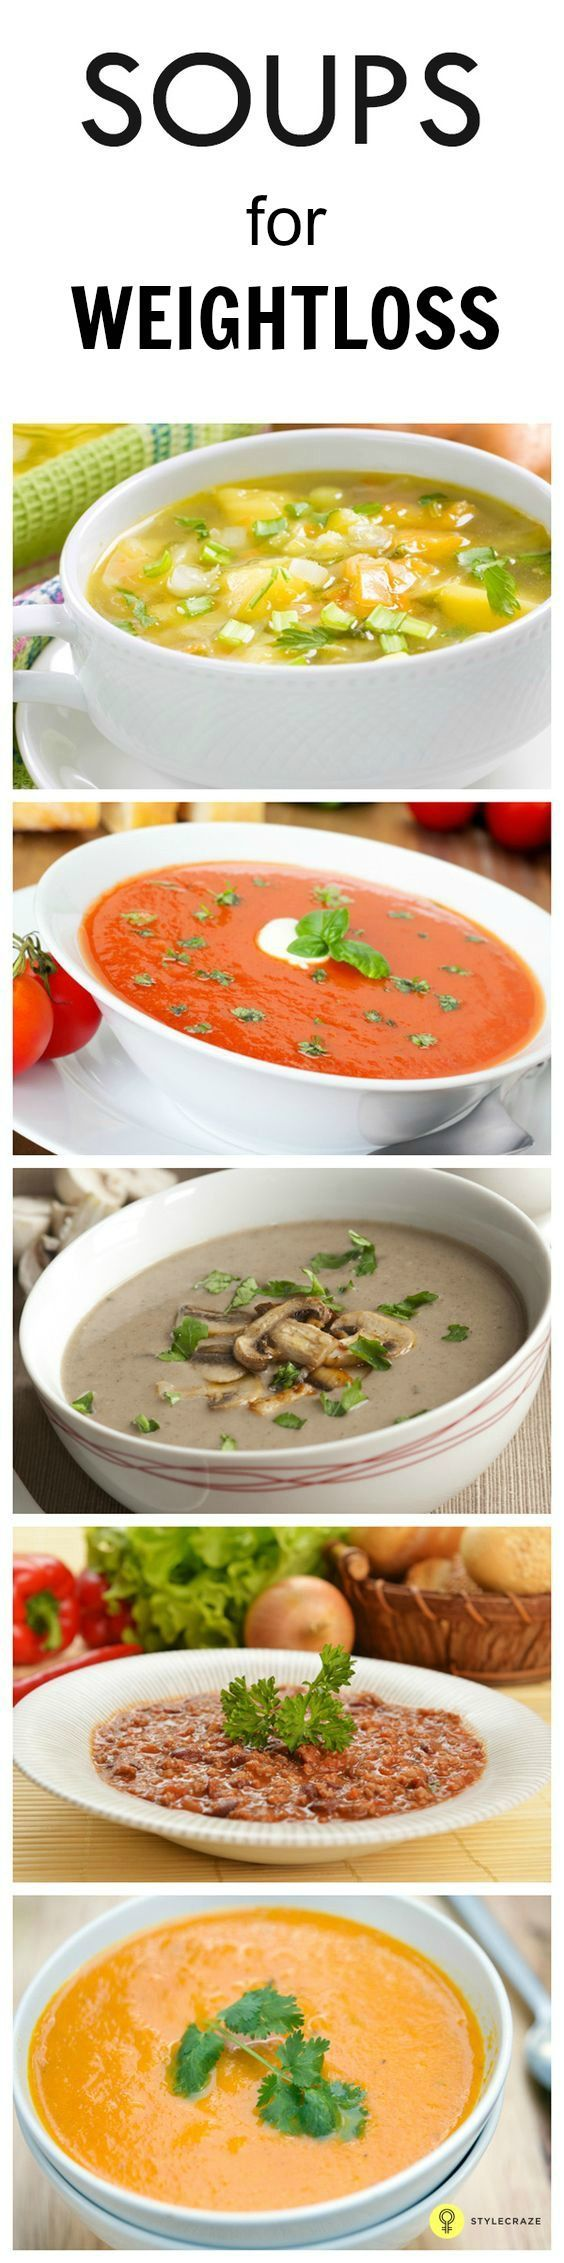 There are several varieties of soups to choose from, ranging from rich creamy ones to slimming soups. Here are 10 easy and healthy recipes of diet soups for weight loss for you to try for dinner tonight.